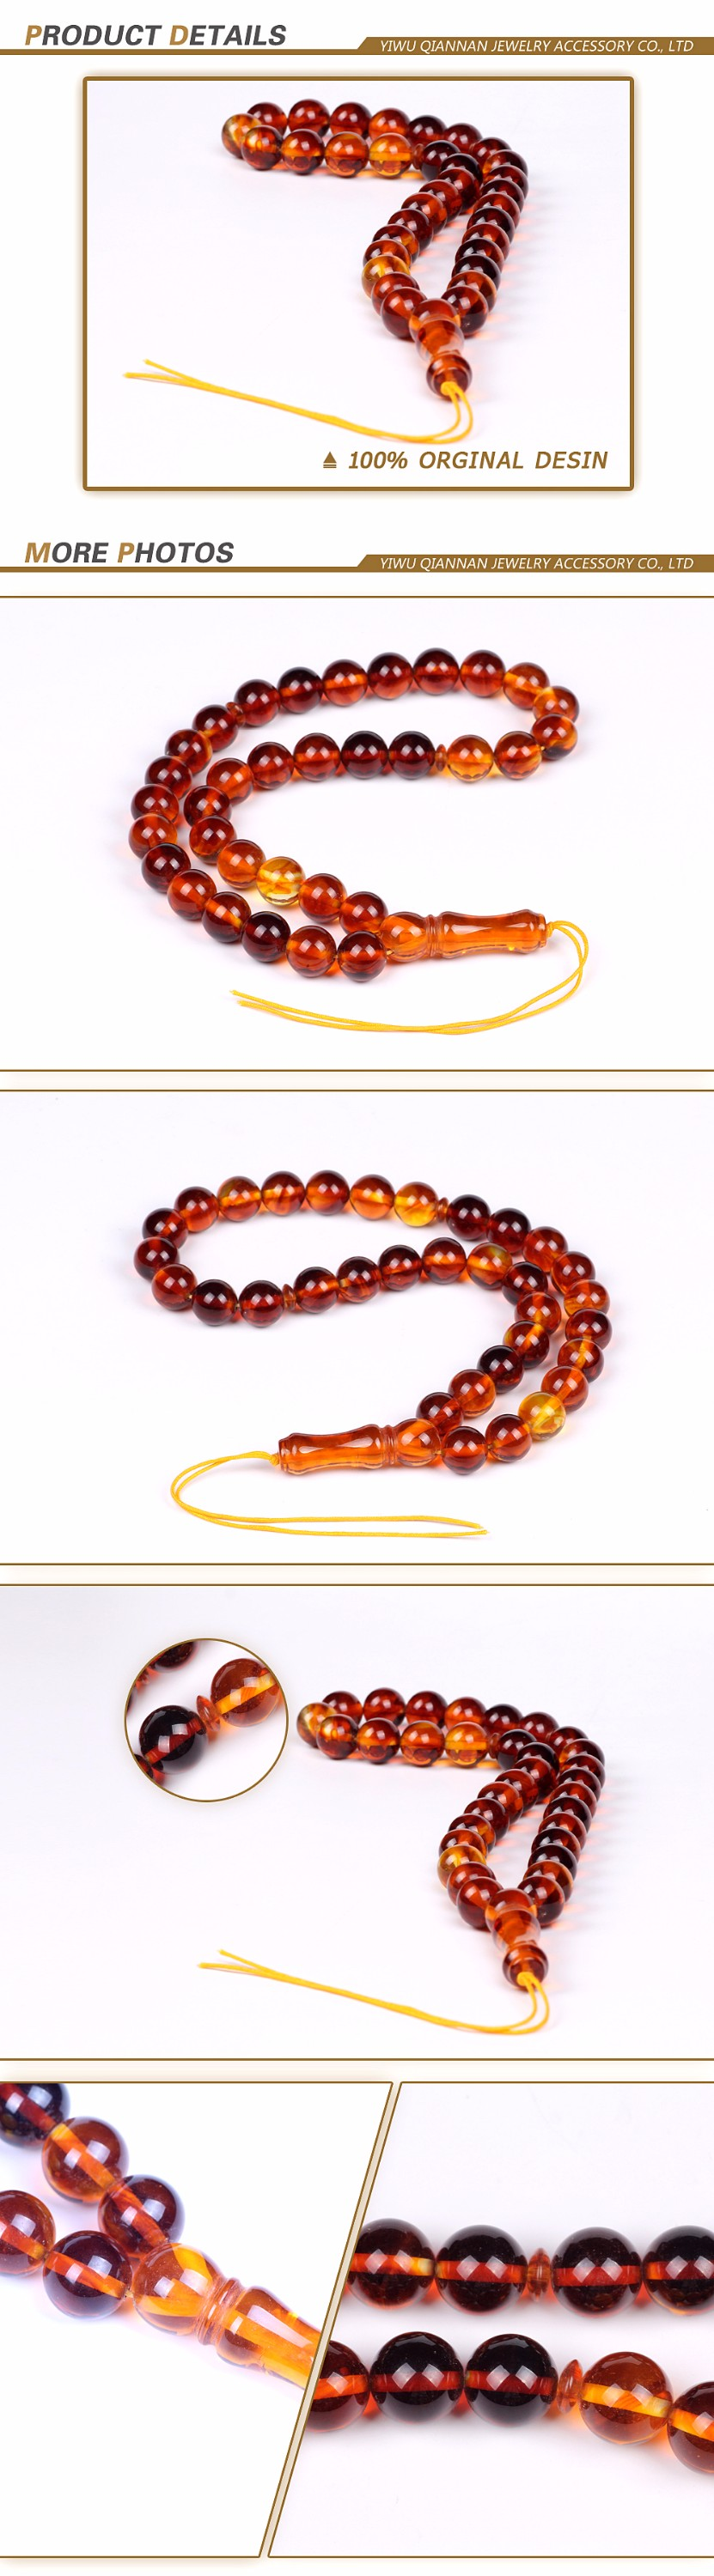 iridescent baltic amber different types of rosary prayer beads by handmade material of our fashion Crystal glass